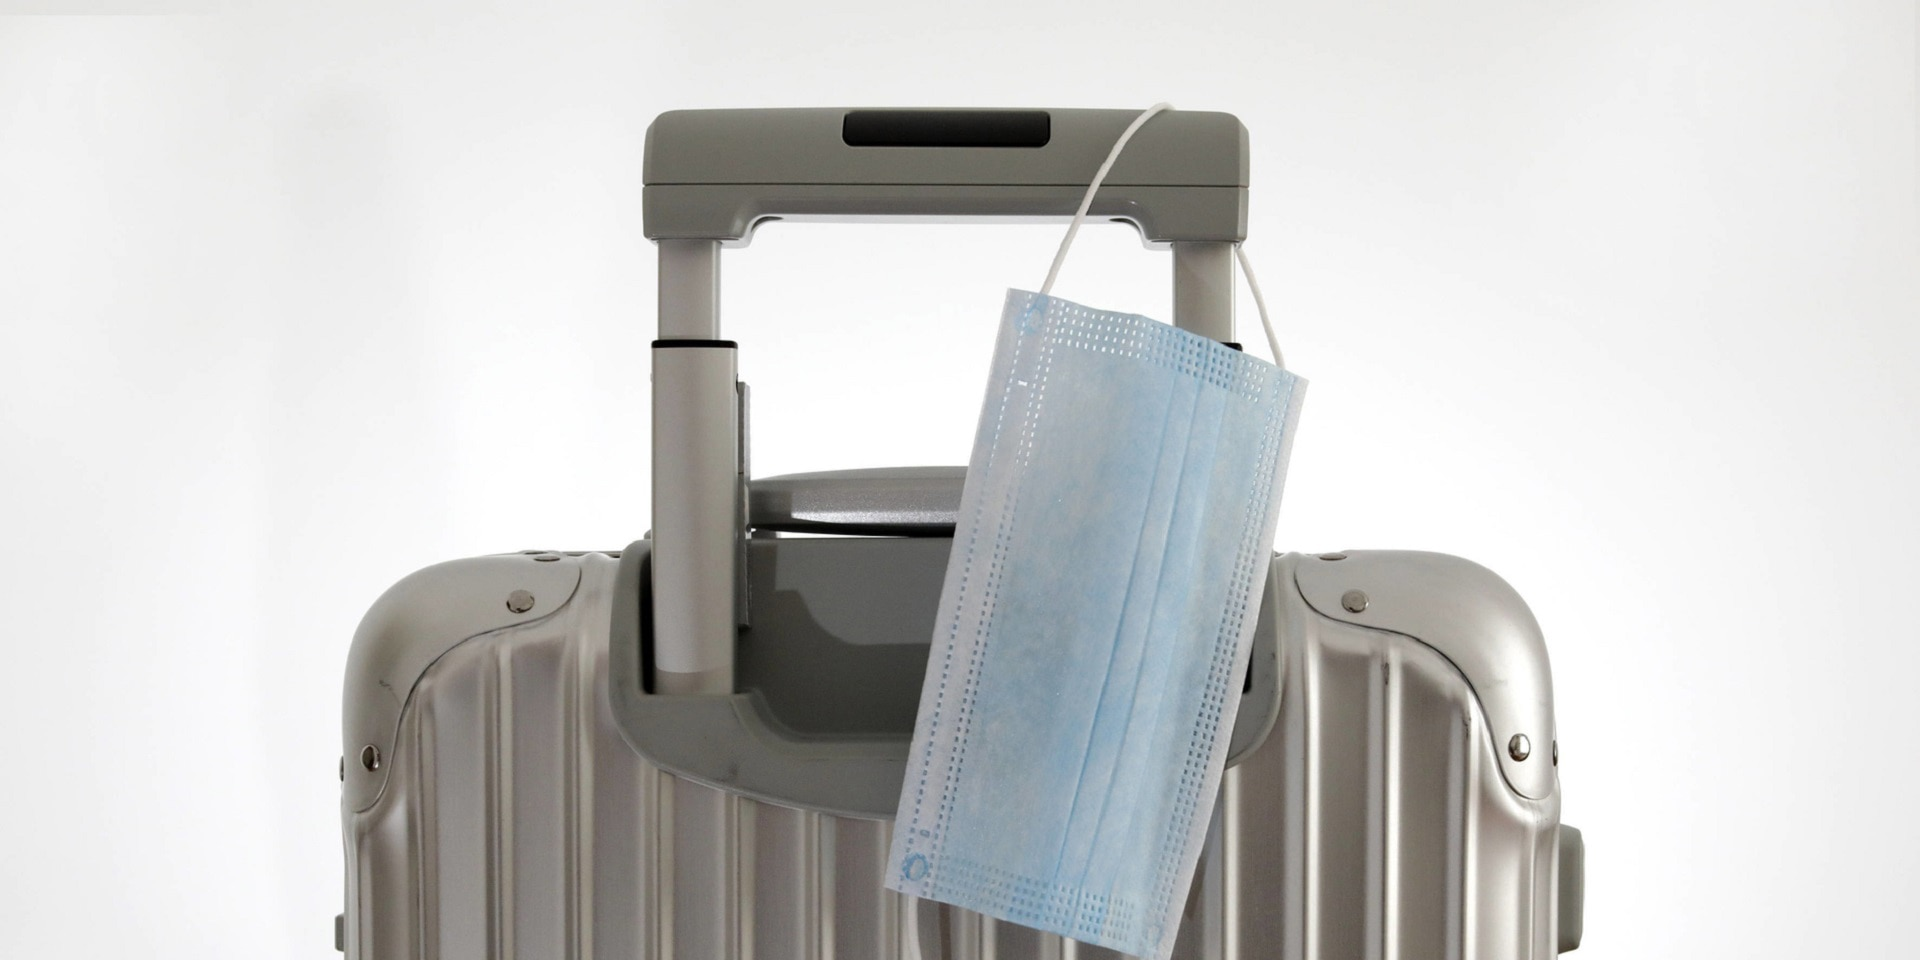 A face mask hangs on the handle of a gray suitcase.